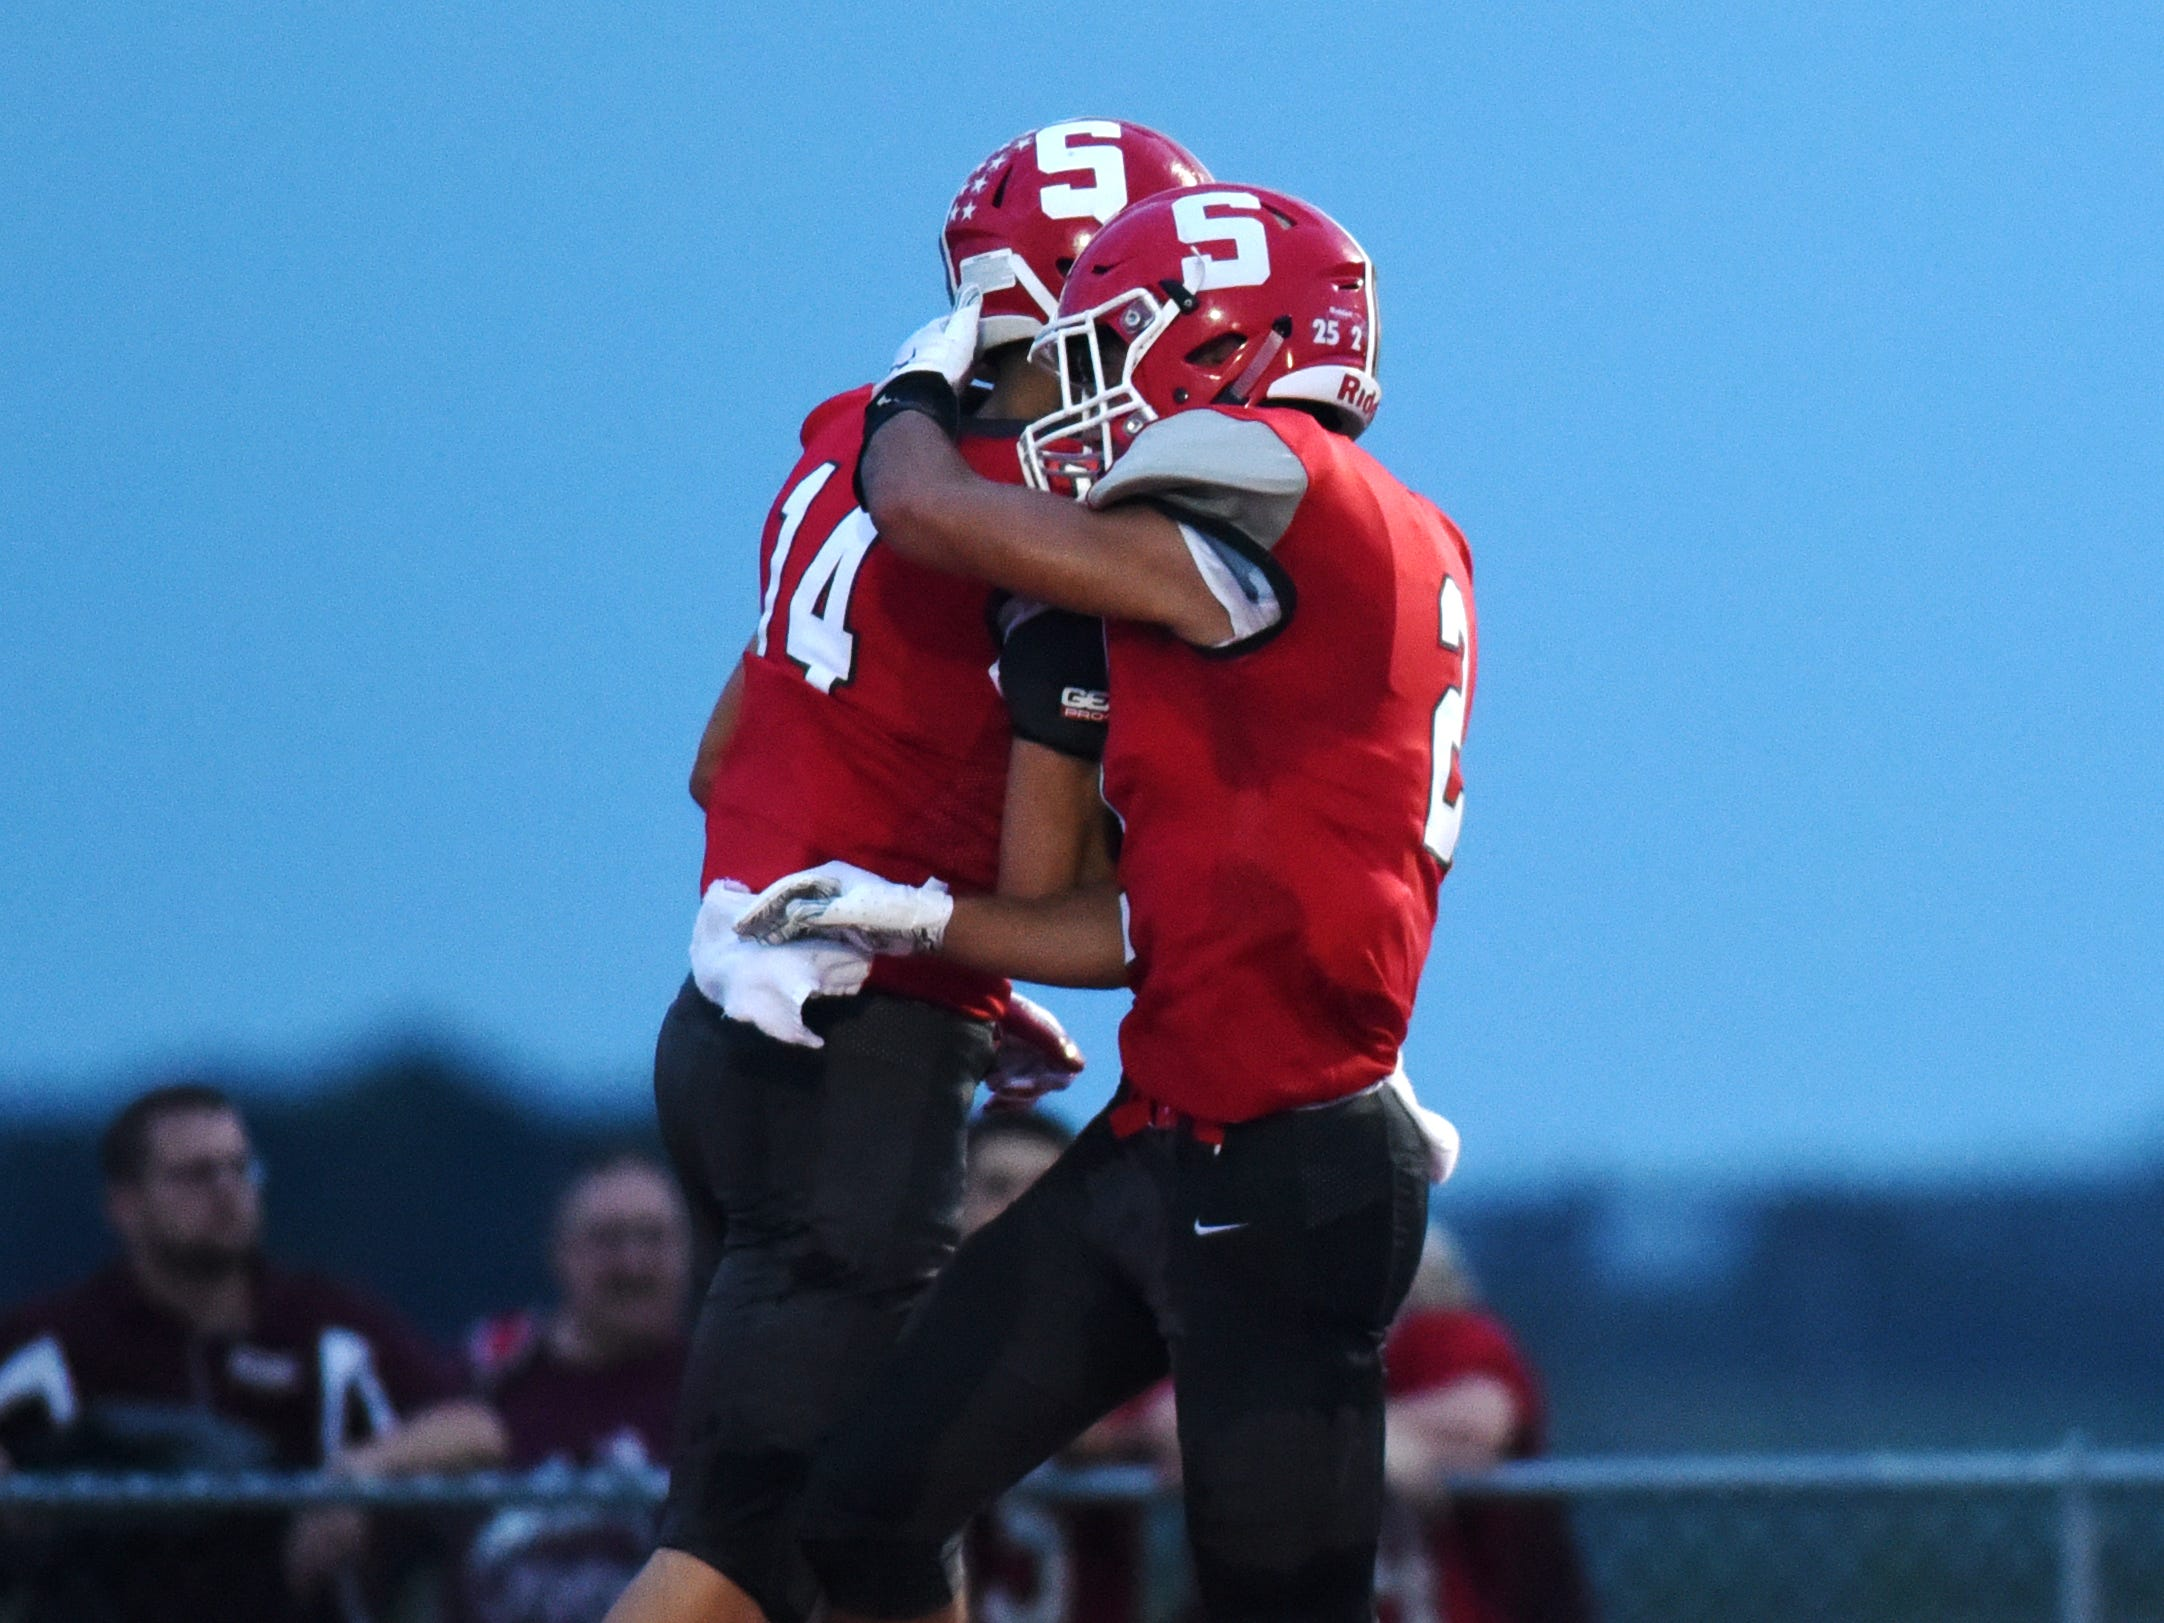 Logan Ranft, left, and Cole Casto celebrate in the end zone after Ranft caught a 51-yard touchdown pass in the second quarter of the Generals' 37-7 win against John Glenn on Friday night at Paul Culver Jr. Stadium.